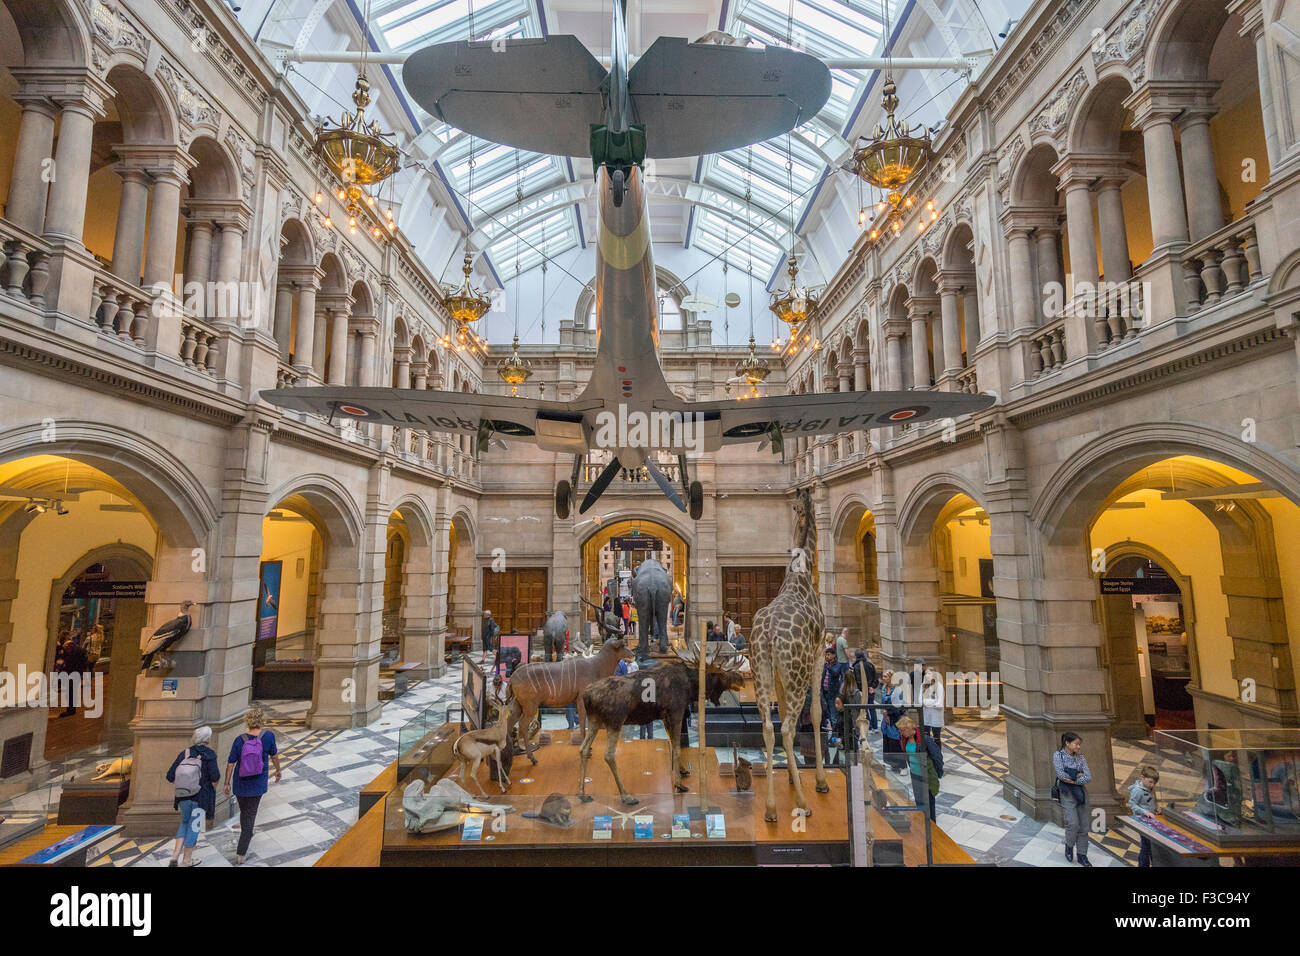 the museum and art gallery kelvingrove tourism essay Housed inside a striking sandstone victorian edifice, kelvingrove art gallery and  museum is one of scotland's most-visited cultural attractions works by dali.